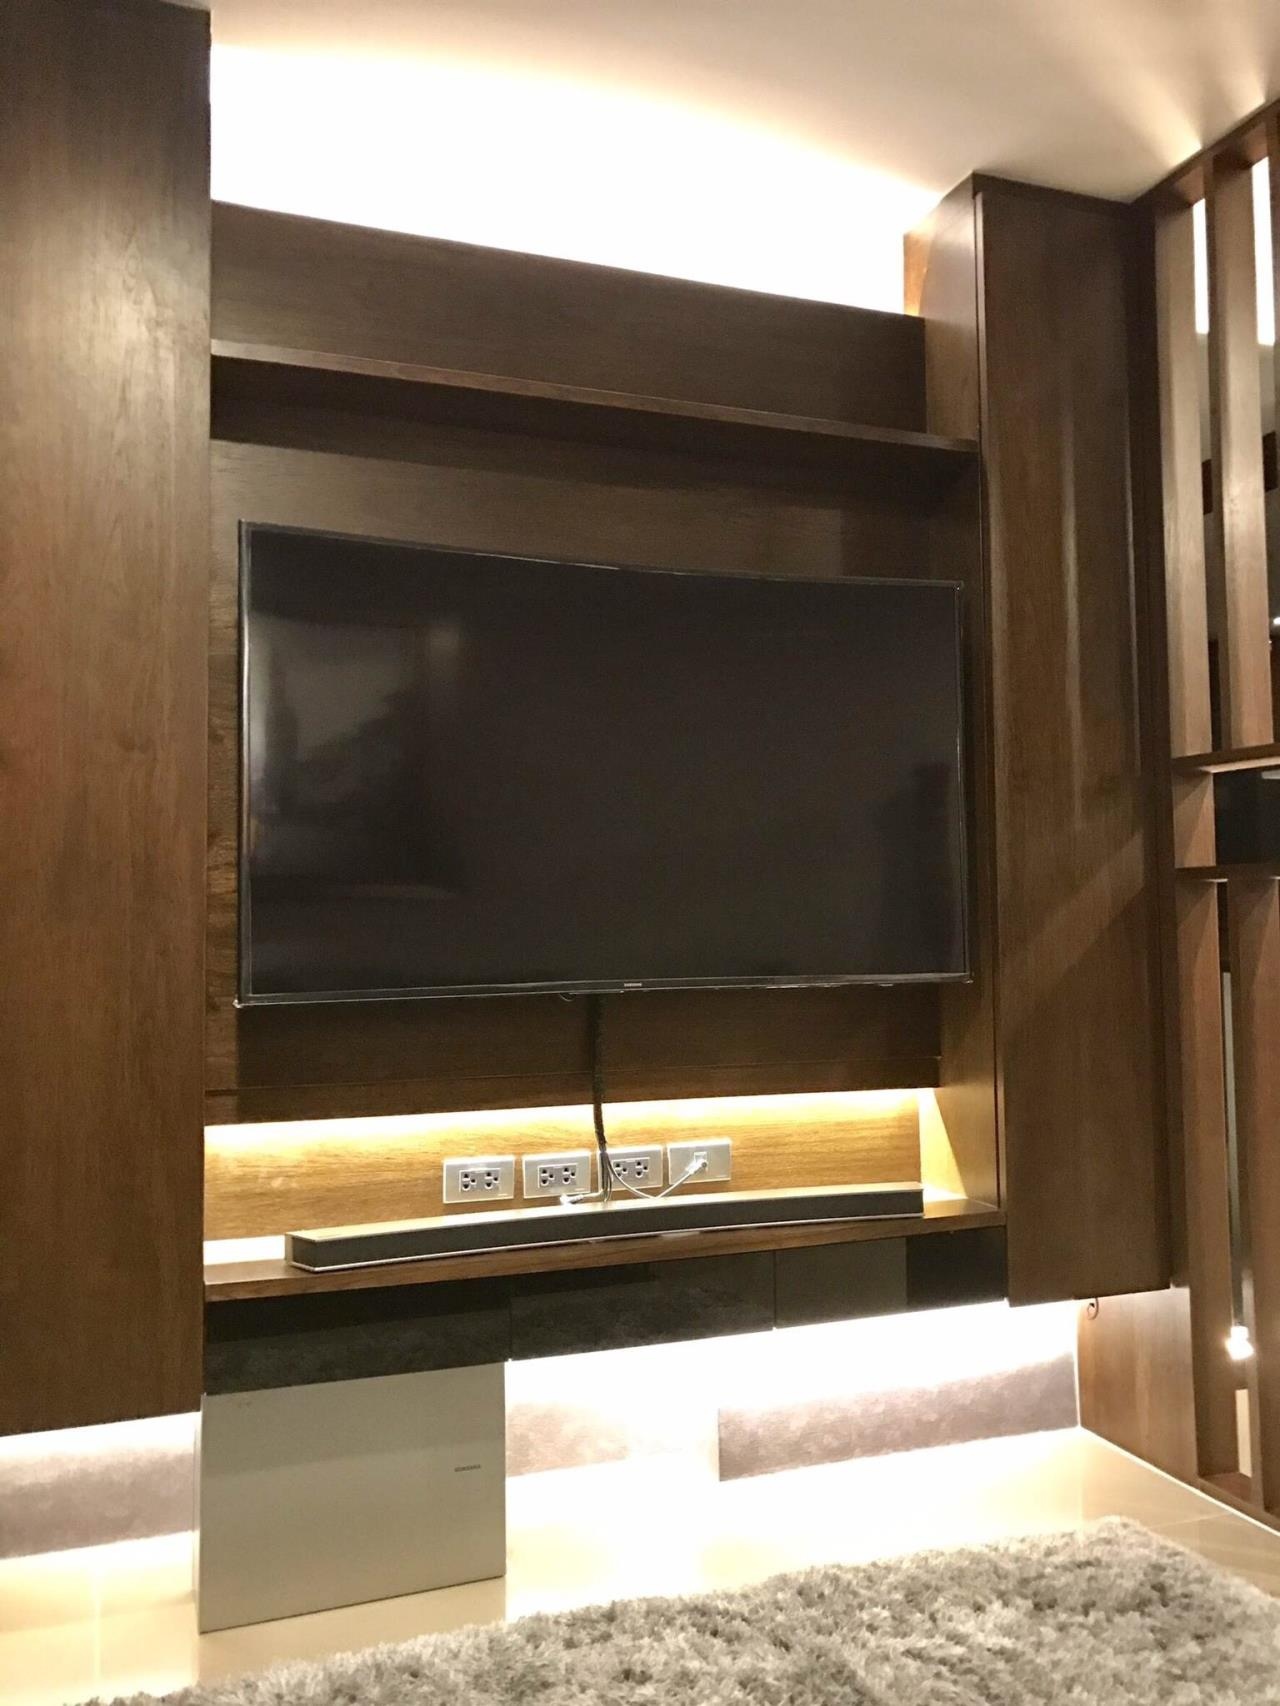 RE/MAX All Star Realty Agency's Mirage Sukhumvit one bed condo for sale/rent (BTS Asoke / MRT Sukhumvit) 8